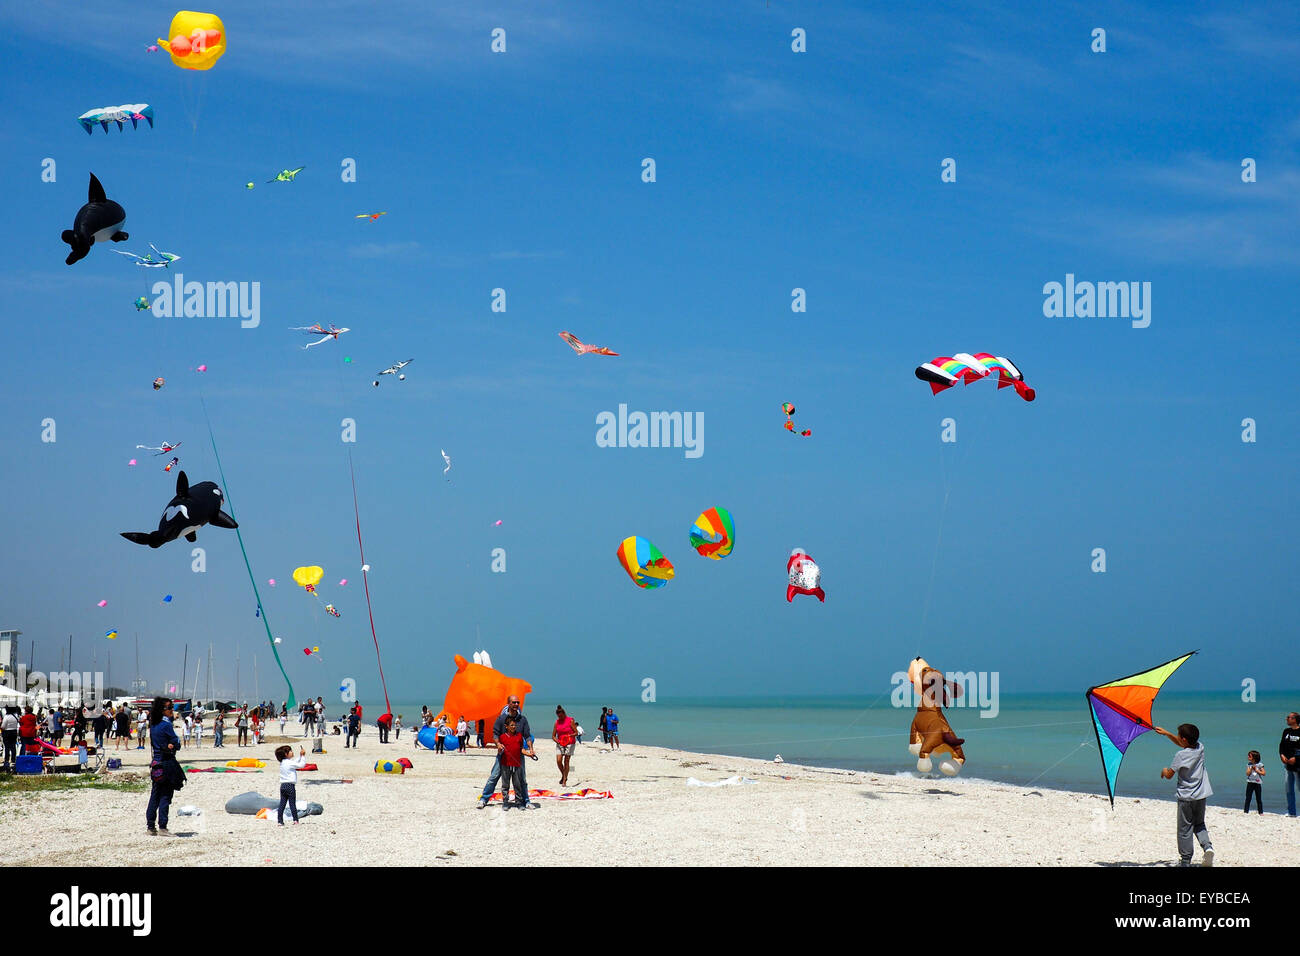 Colourful and animal shaped kites flying over a beach. - Stock Image